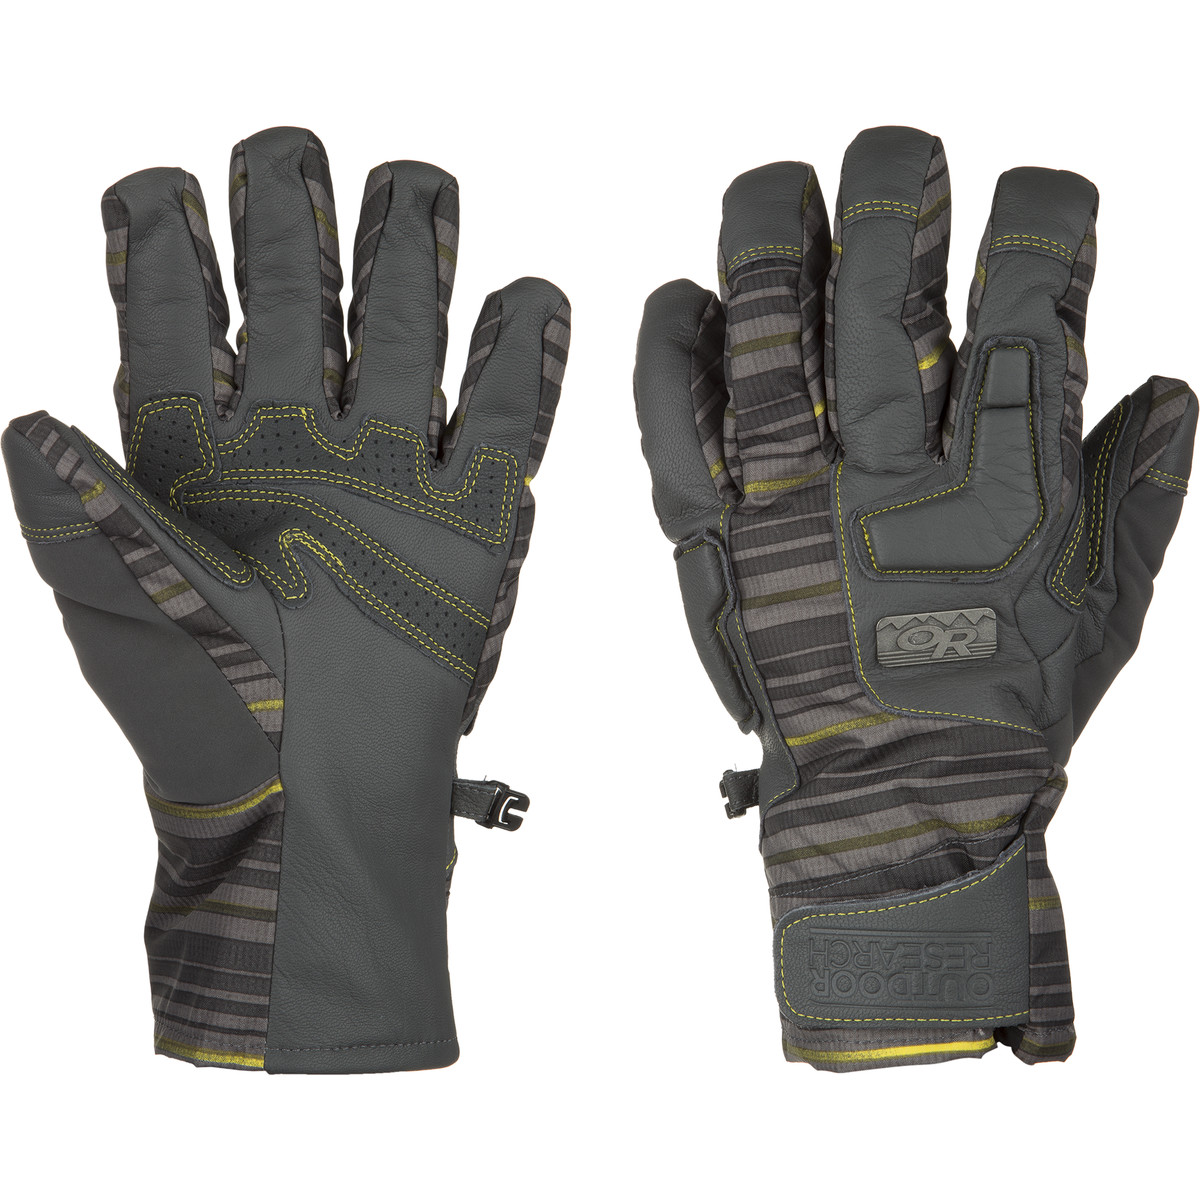 Outdoor Research Knuckleduster Gloves